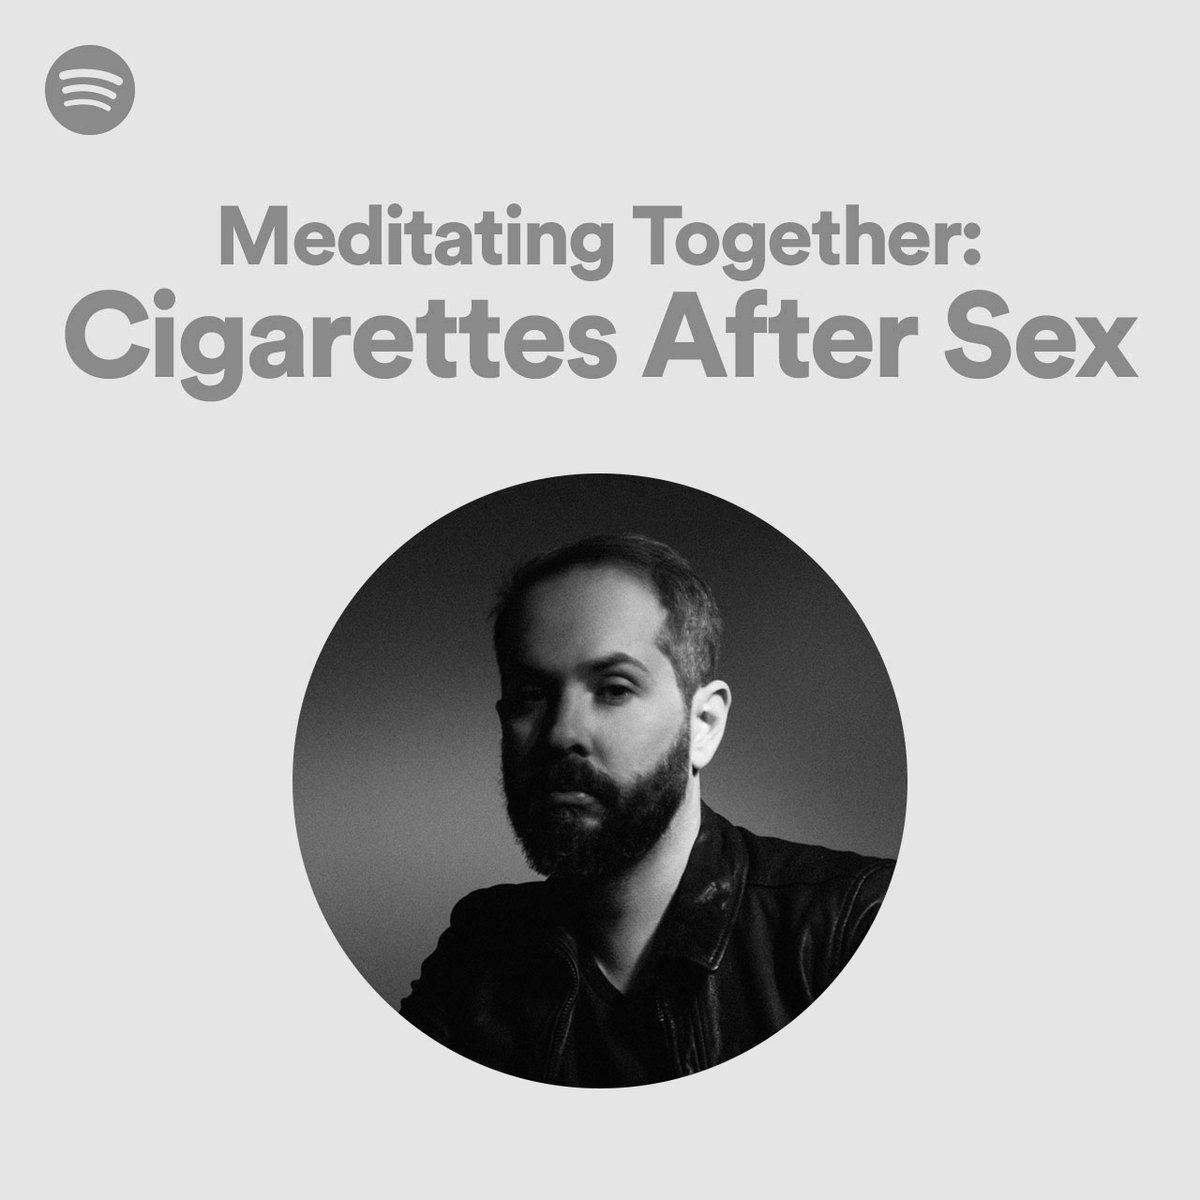 thanks to @Spotify for letting me feature so much of my favorite music on their Meditating Together playlist... #ListeningTogether spoti.fi/CASTakeover